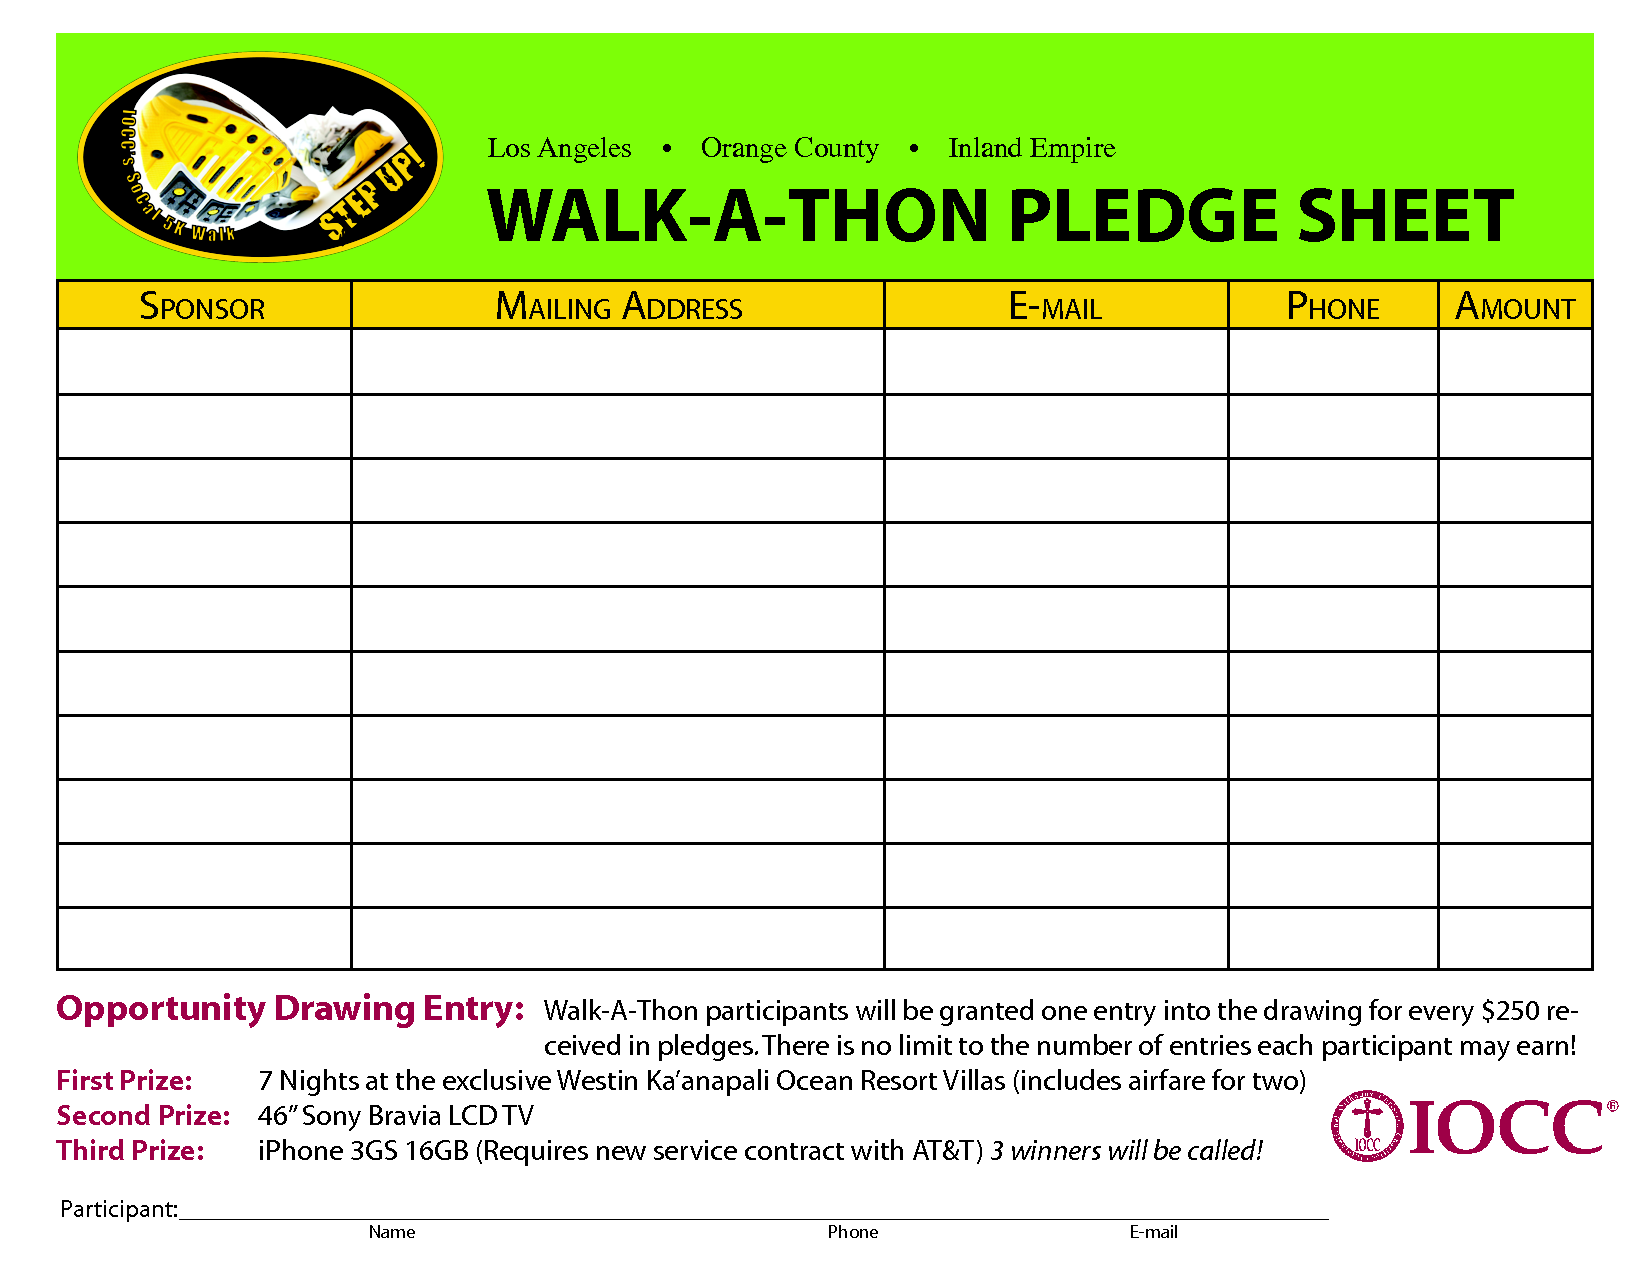 walk-a-thon pledge sheet